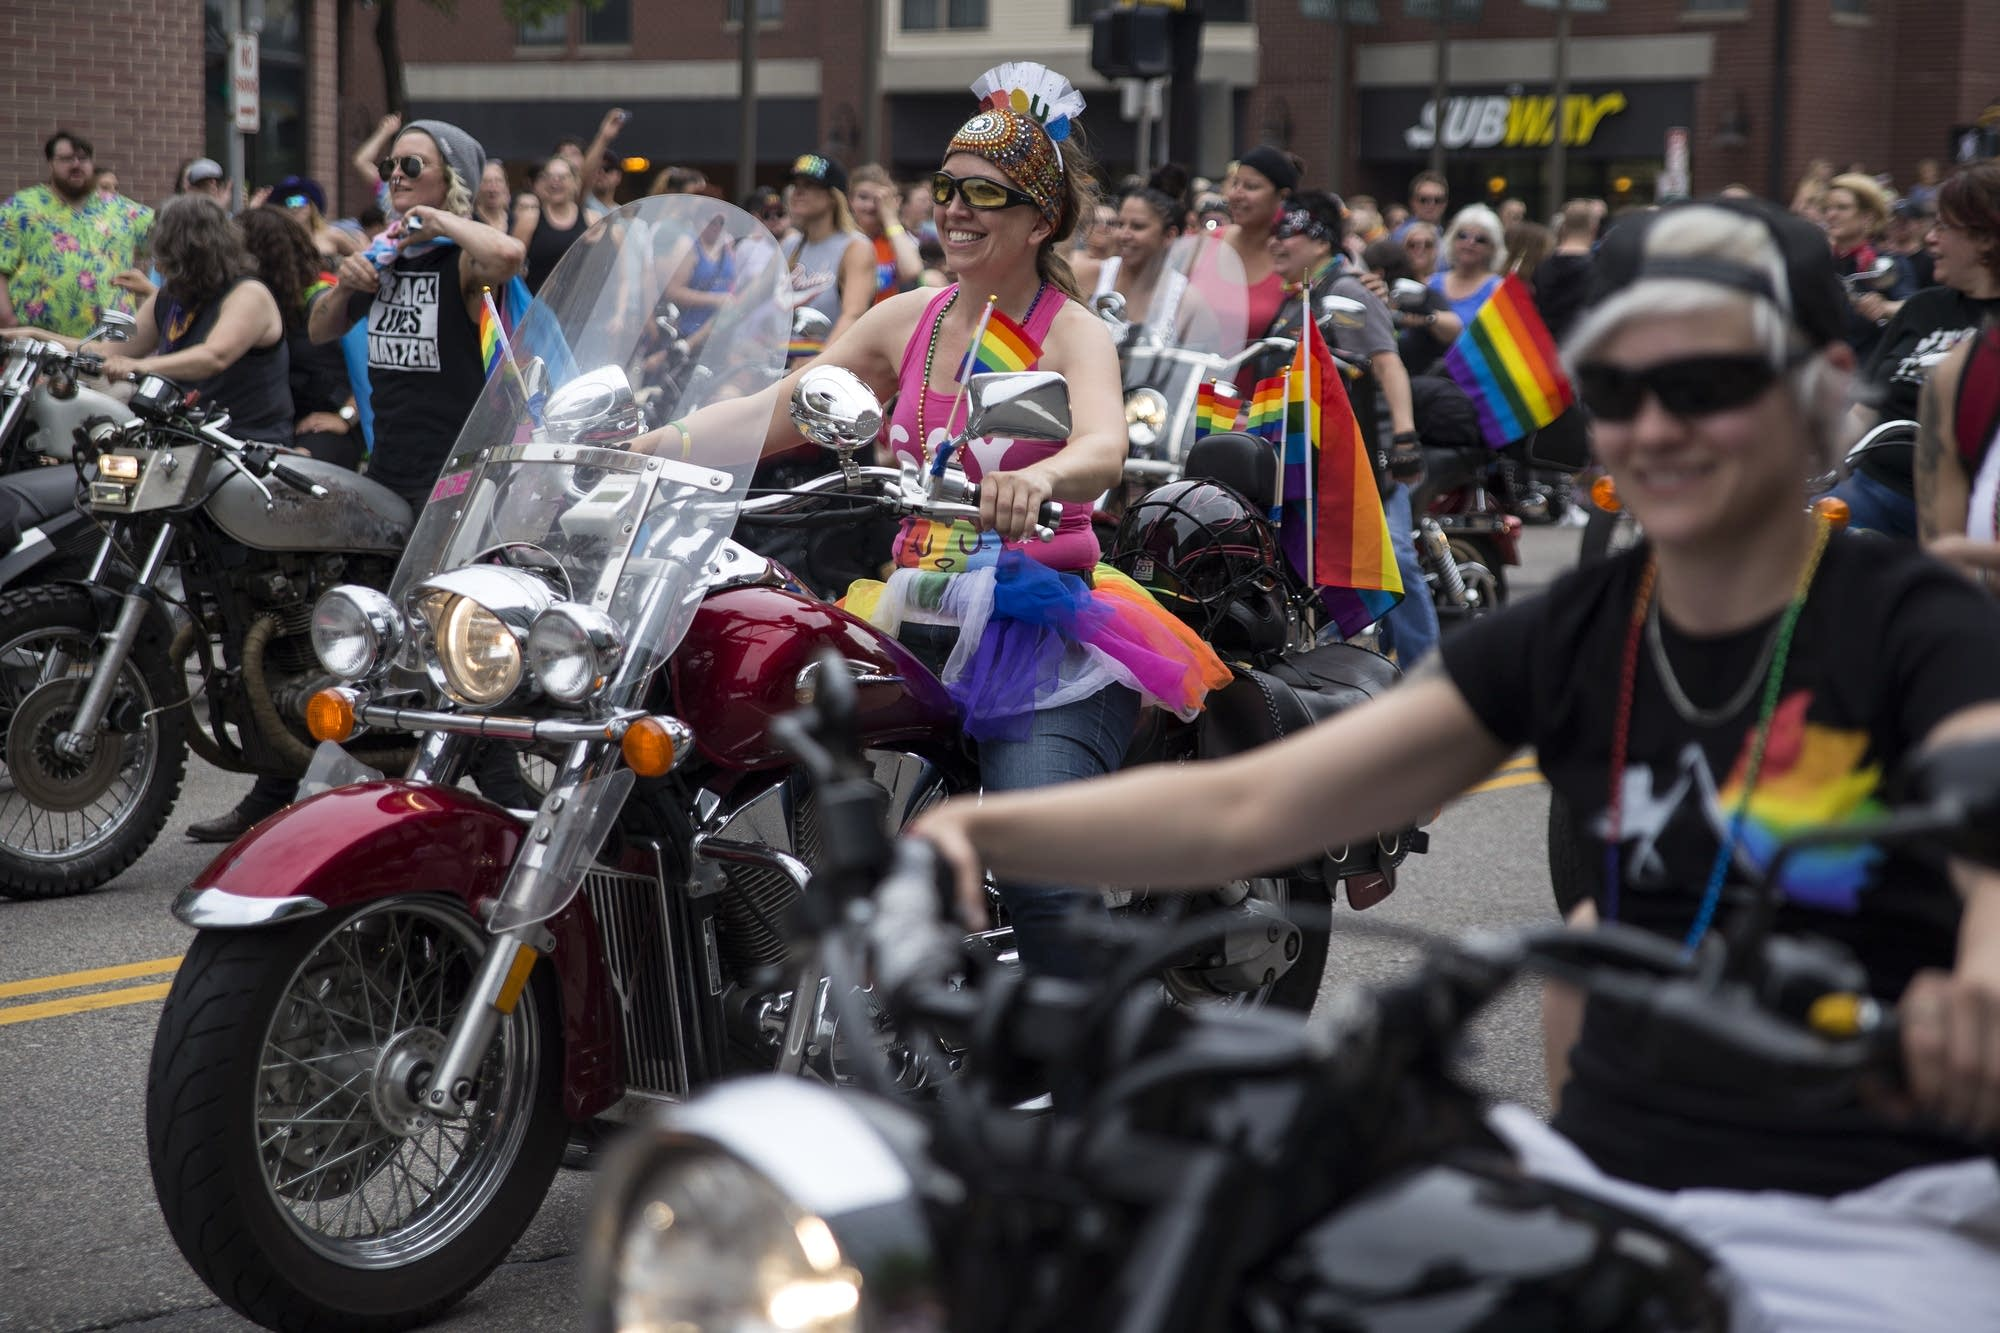 Dykes On Bikes lead the start of the parade.